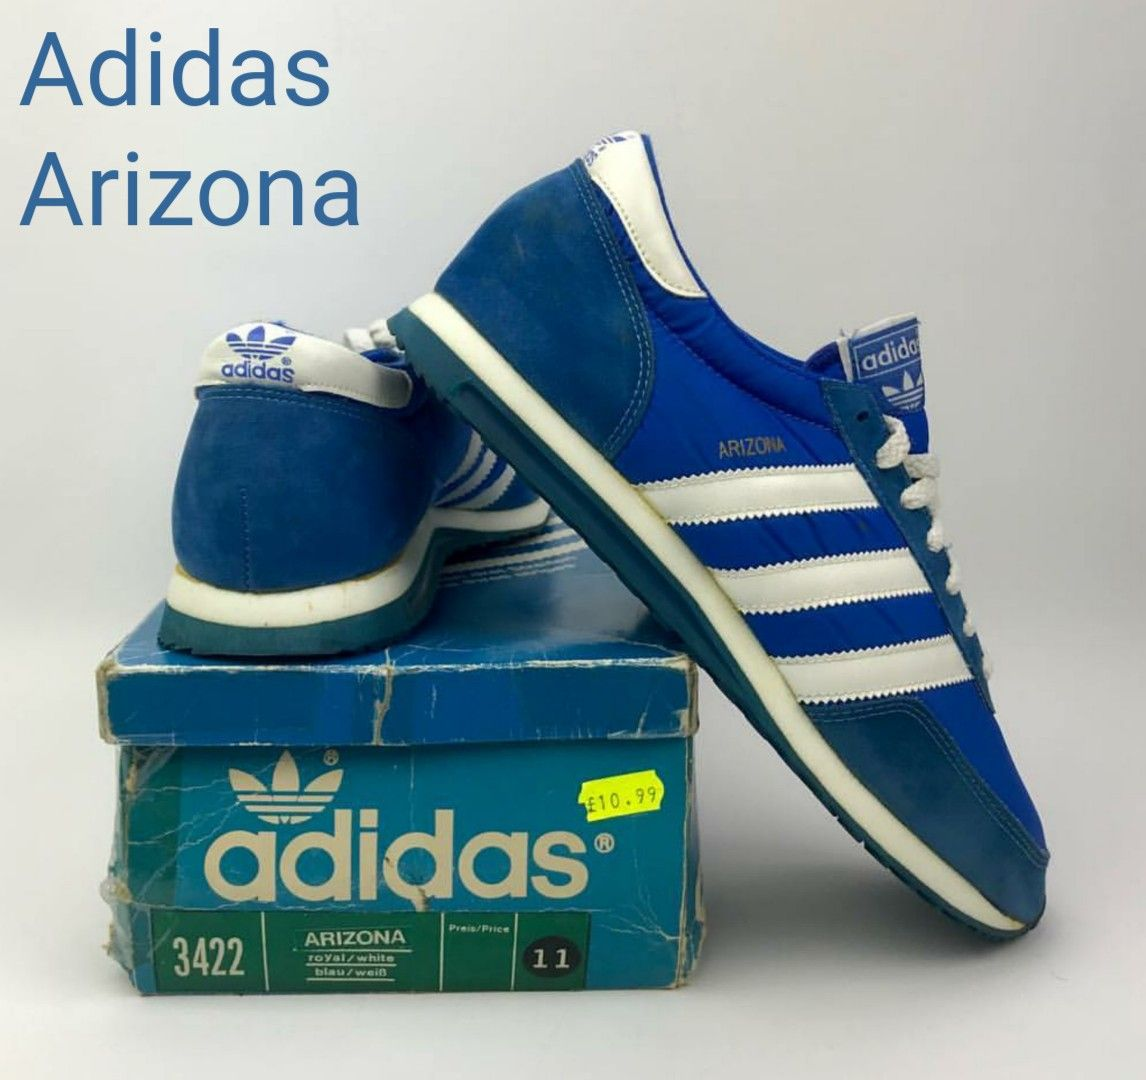 Adidas Munchen sample made in Japan with a Samba sole unit